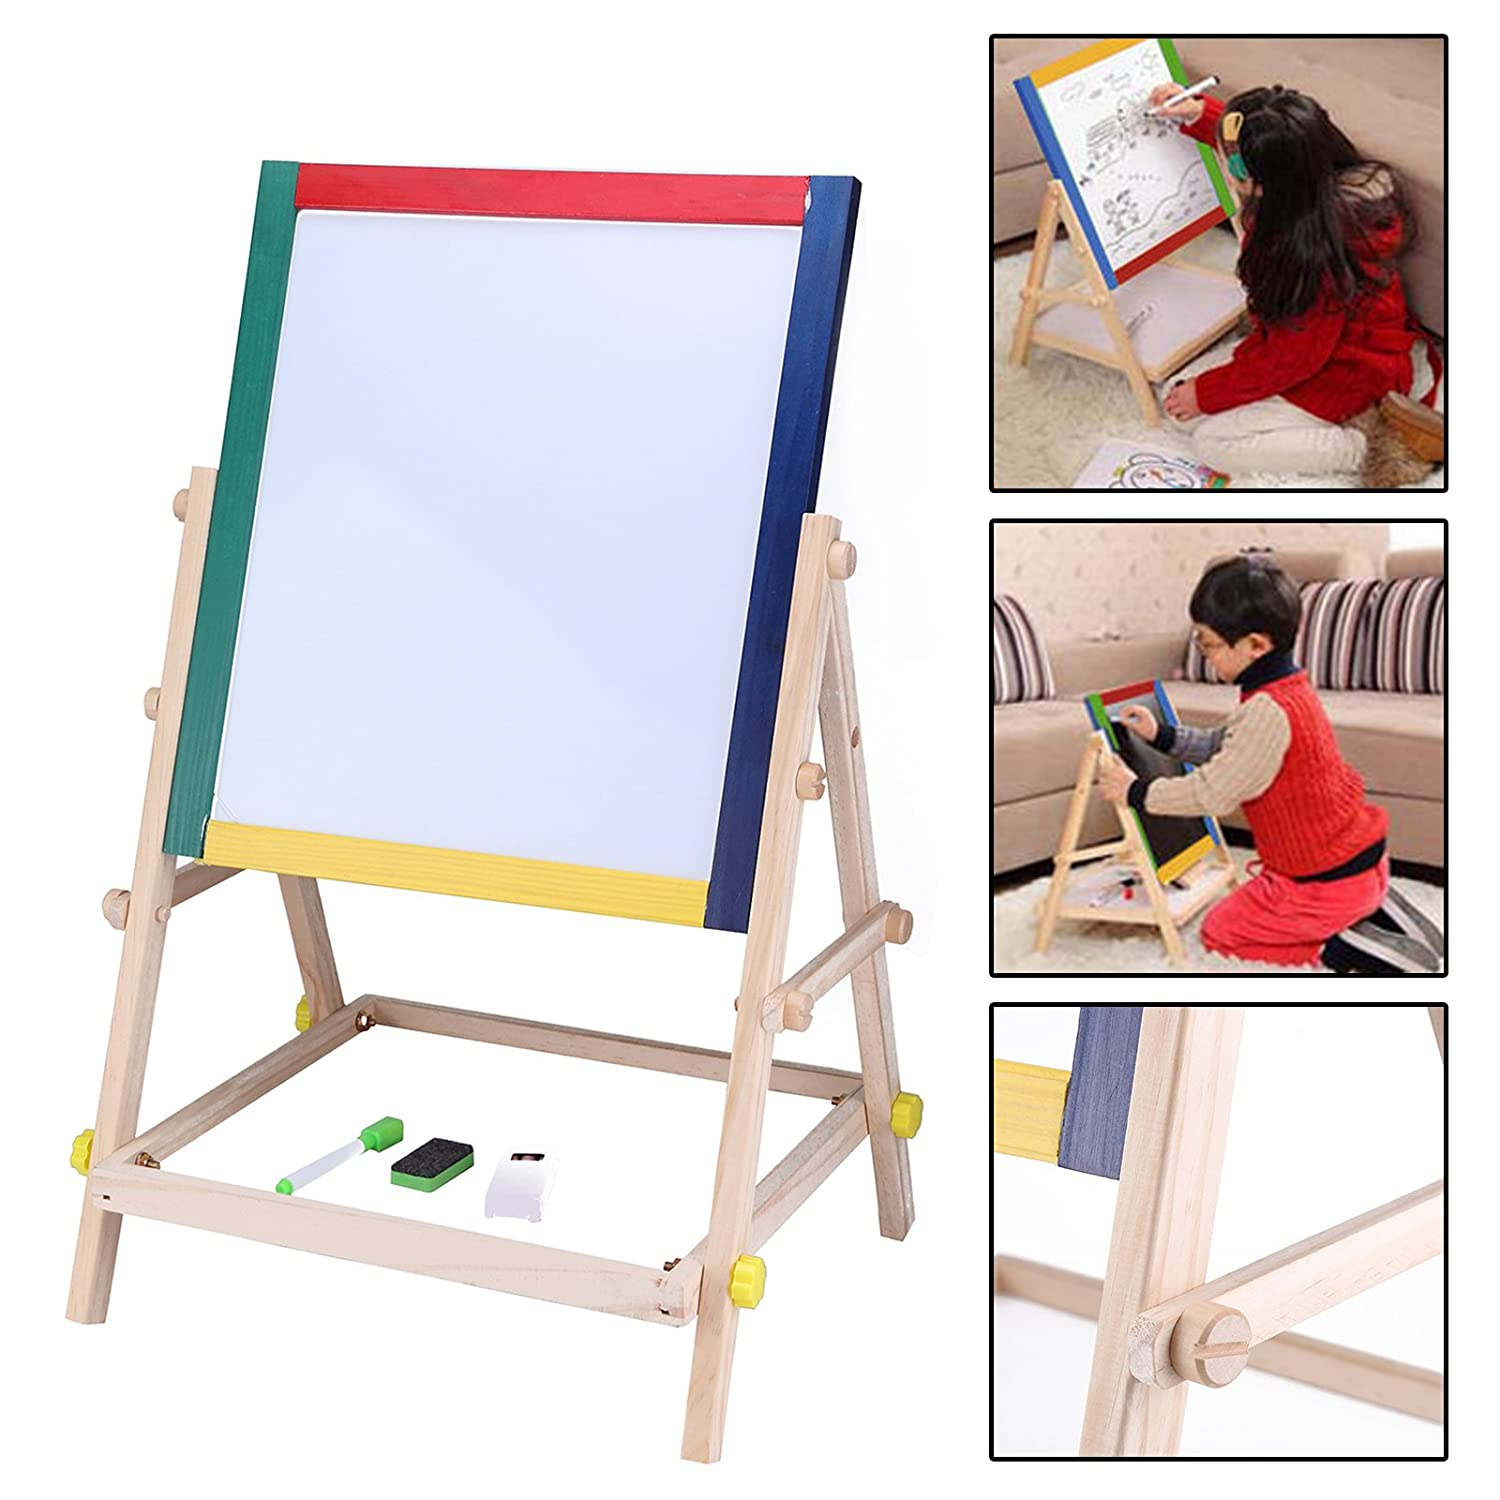 DHOUTDOORS Children Drawing Board Wooden 2 In 1 Kids Easel Adjustable Black White Chalk